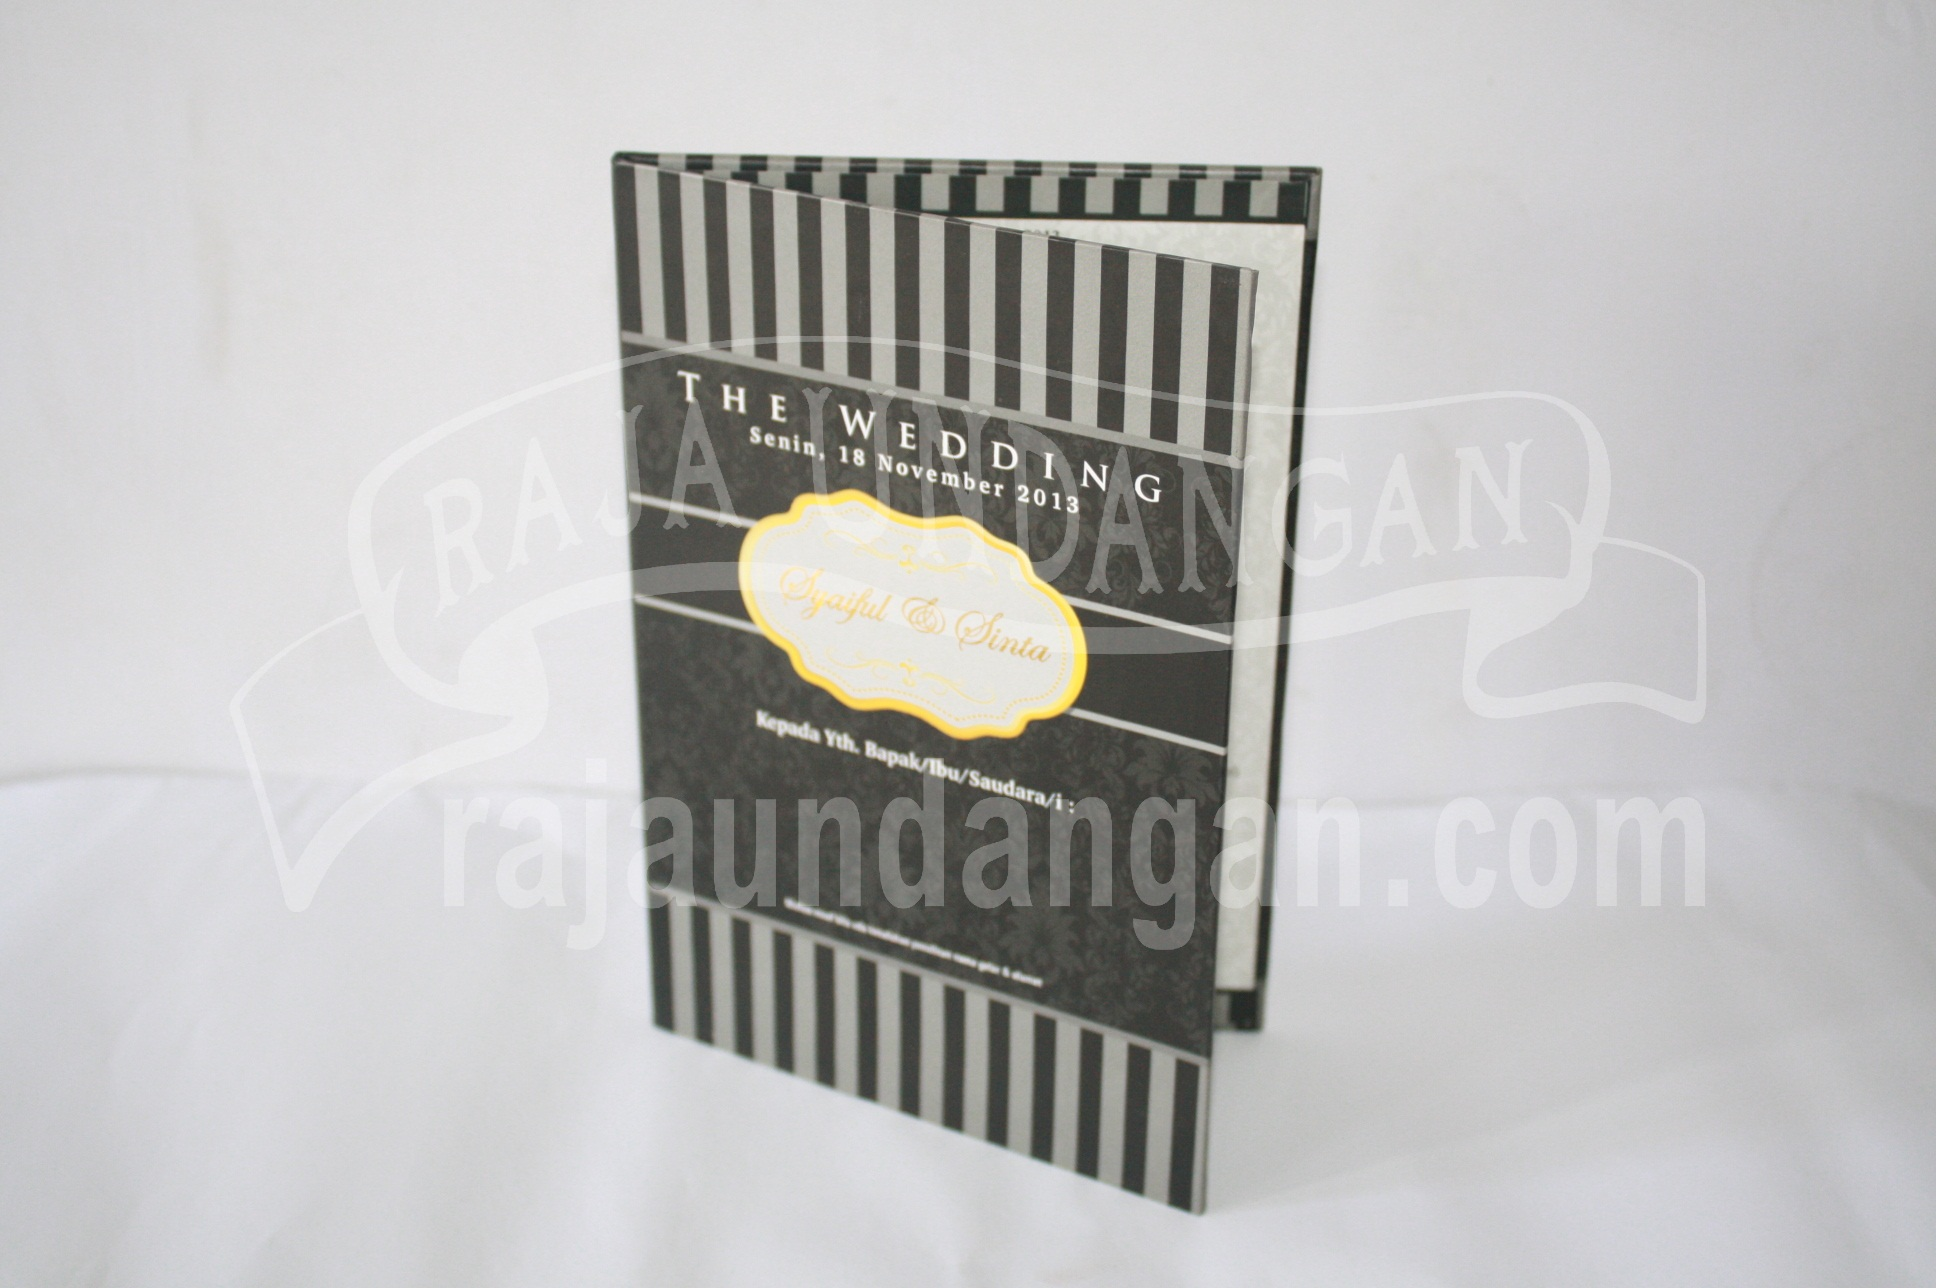 Undangan Pernikahan Mini Hardcover Syaiful dan Sinta EDC 35 - Percetakan Wedding Invitations Unik dan Simple di Simomulyo